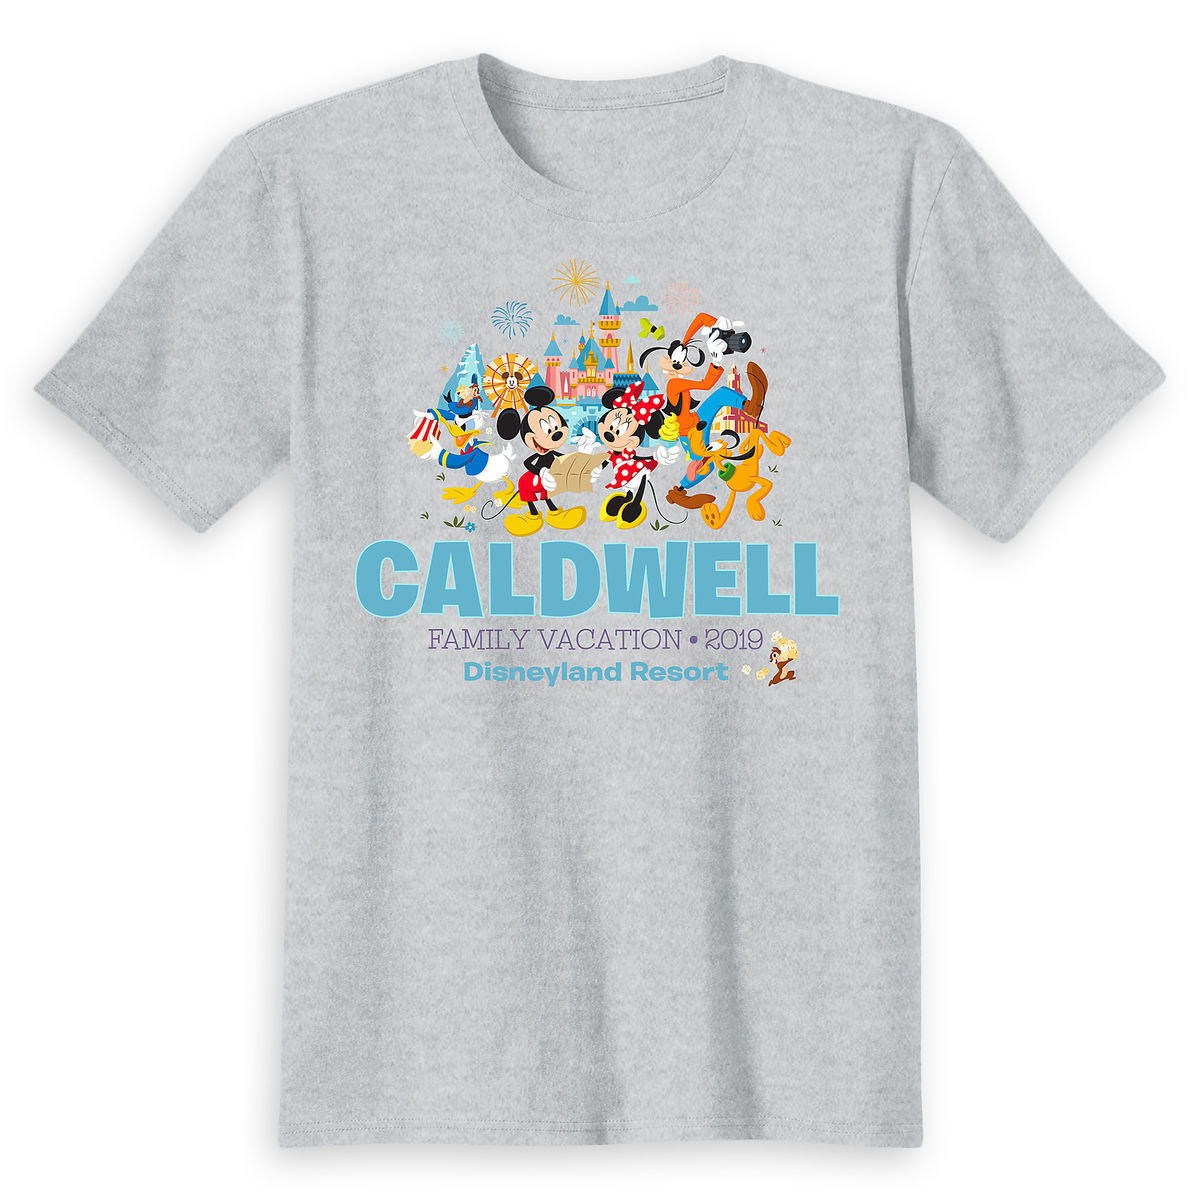 Thumbnail Image of Mickey Mouse and Friends Family Vacation T-Shirt for Kids - Disneyland 2019 - Customized # 1